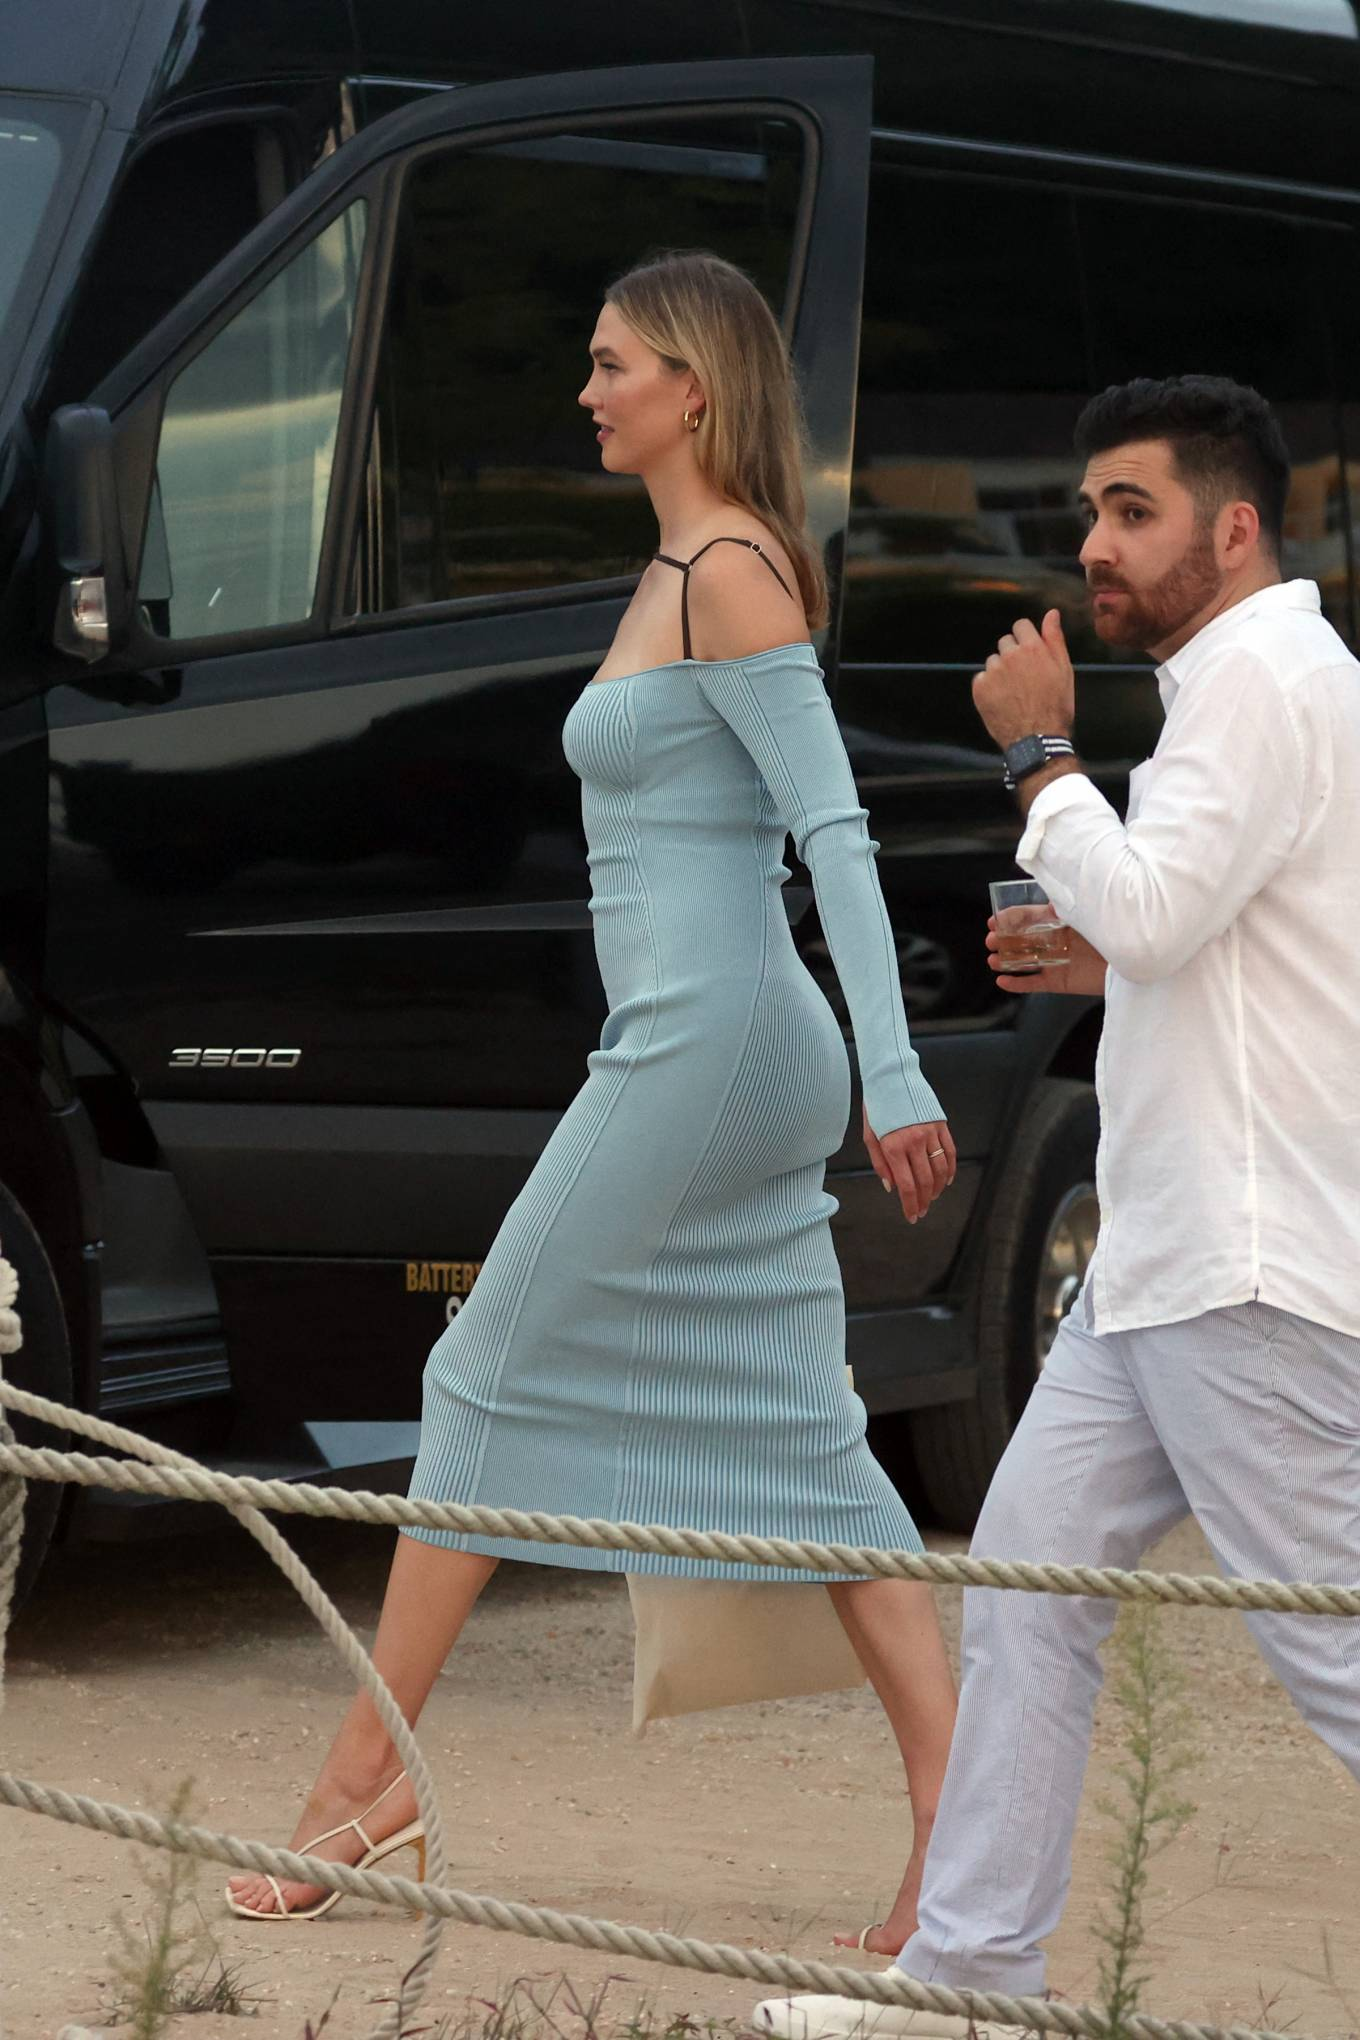 Karlie Kloss wearing a flattering light blue dress with a viscose fabric, full sleeves and cold shoulder